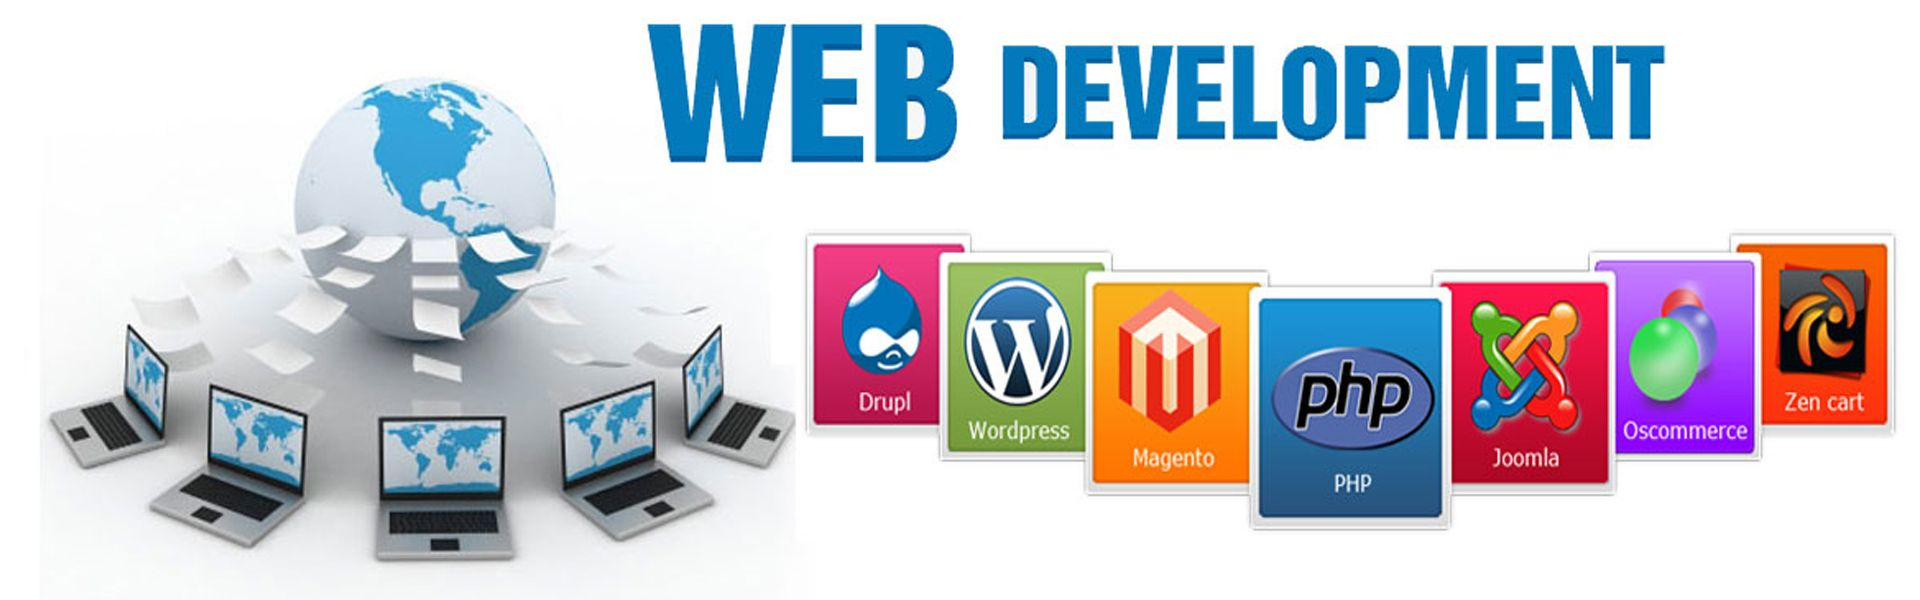 If Are You Looking For Website Design Company In Lucknow Then Visit Our Website Itsws Com And W Web Development Web Development Design Web Development Company